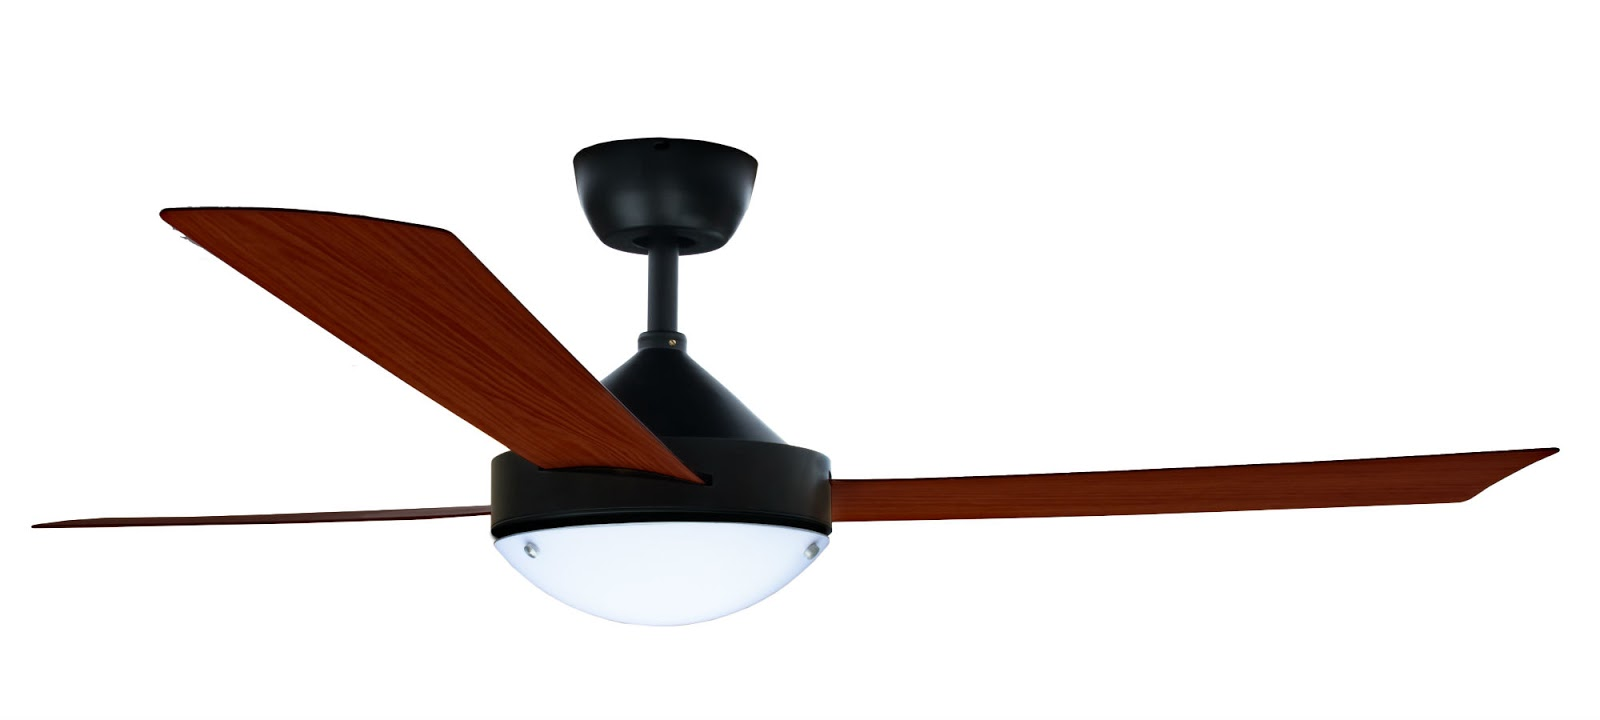 Brilliant Get The Best Ceiling Fans In Australia A The Right Price Download Free Architecture Designs Xaembritishbridgeorg